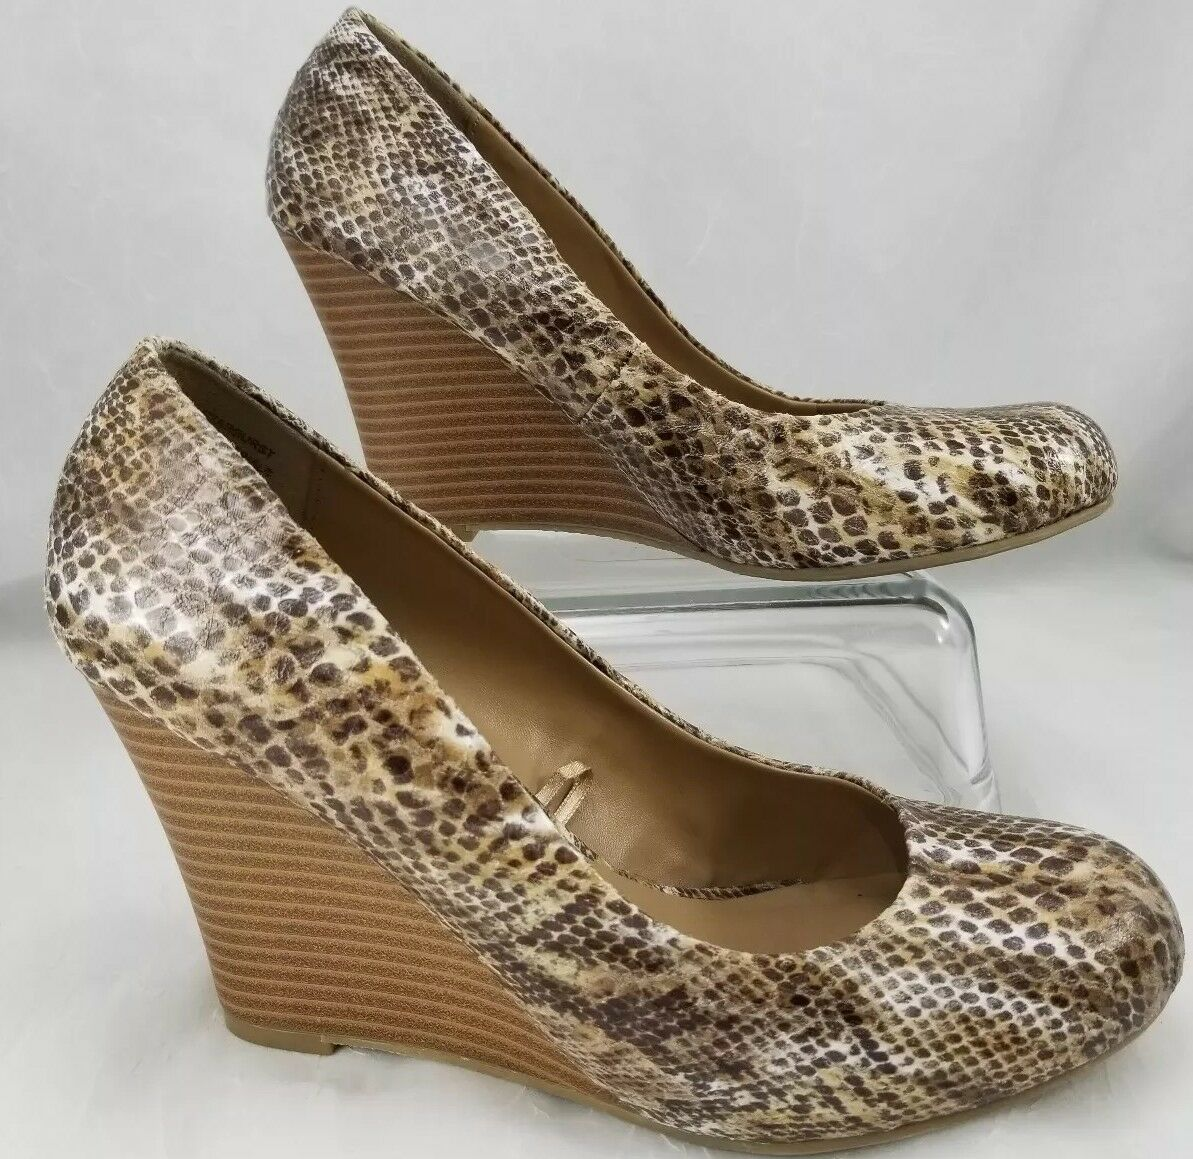 Women's Report Snakeskin Starburst Brown 8.5 Faux Snakeskin Report Wedge Heels 5d9012